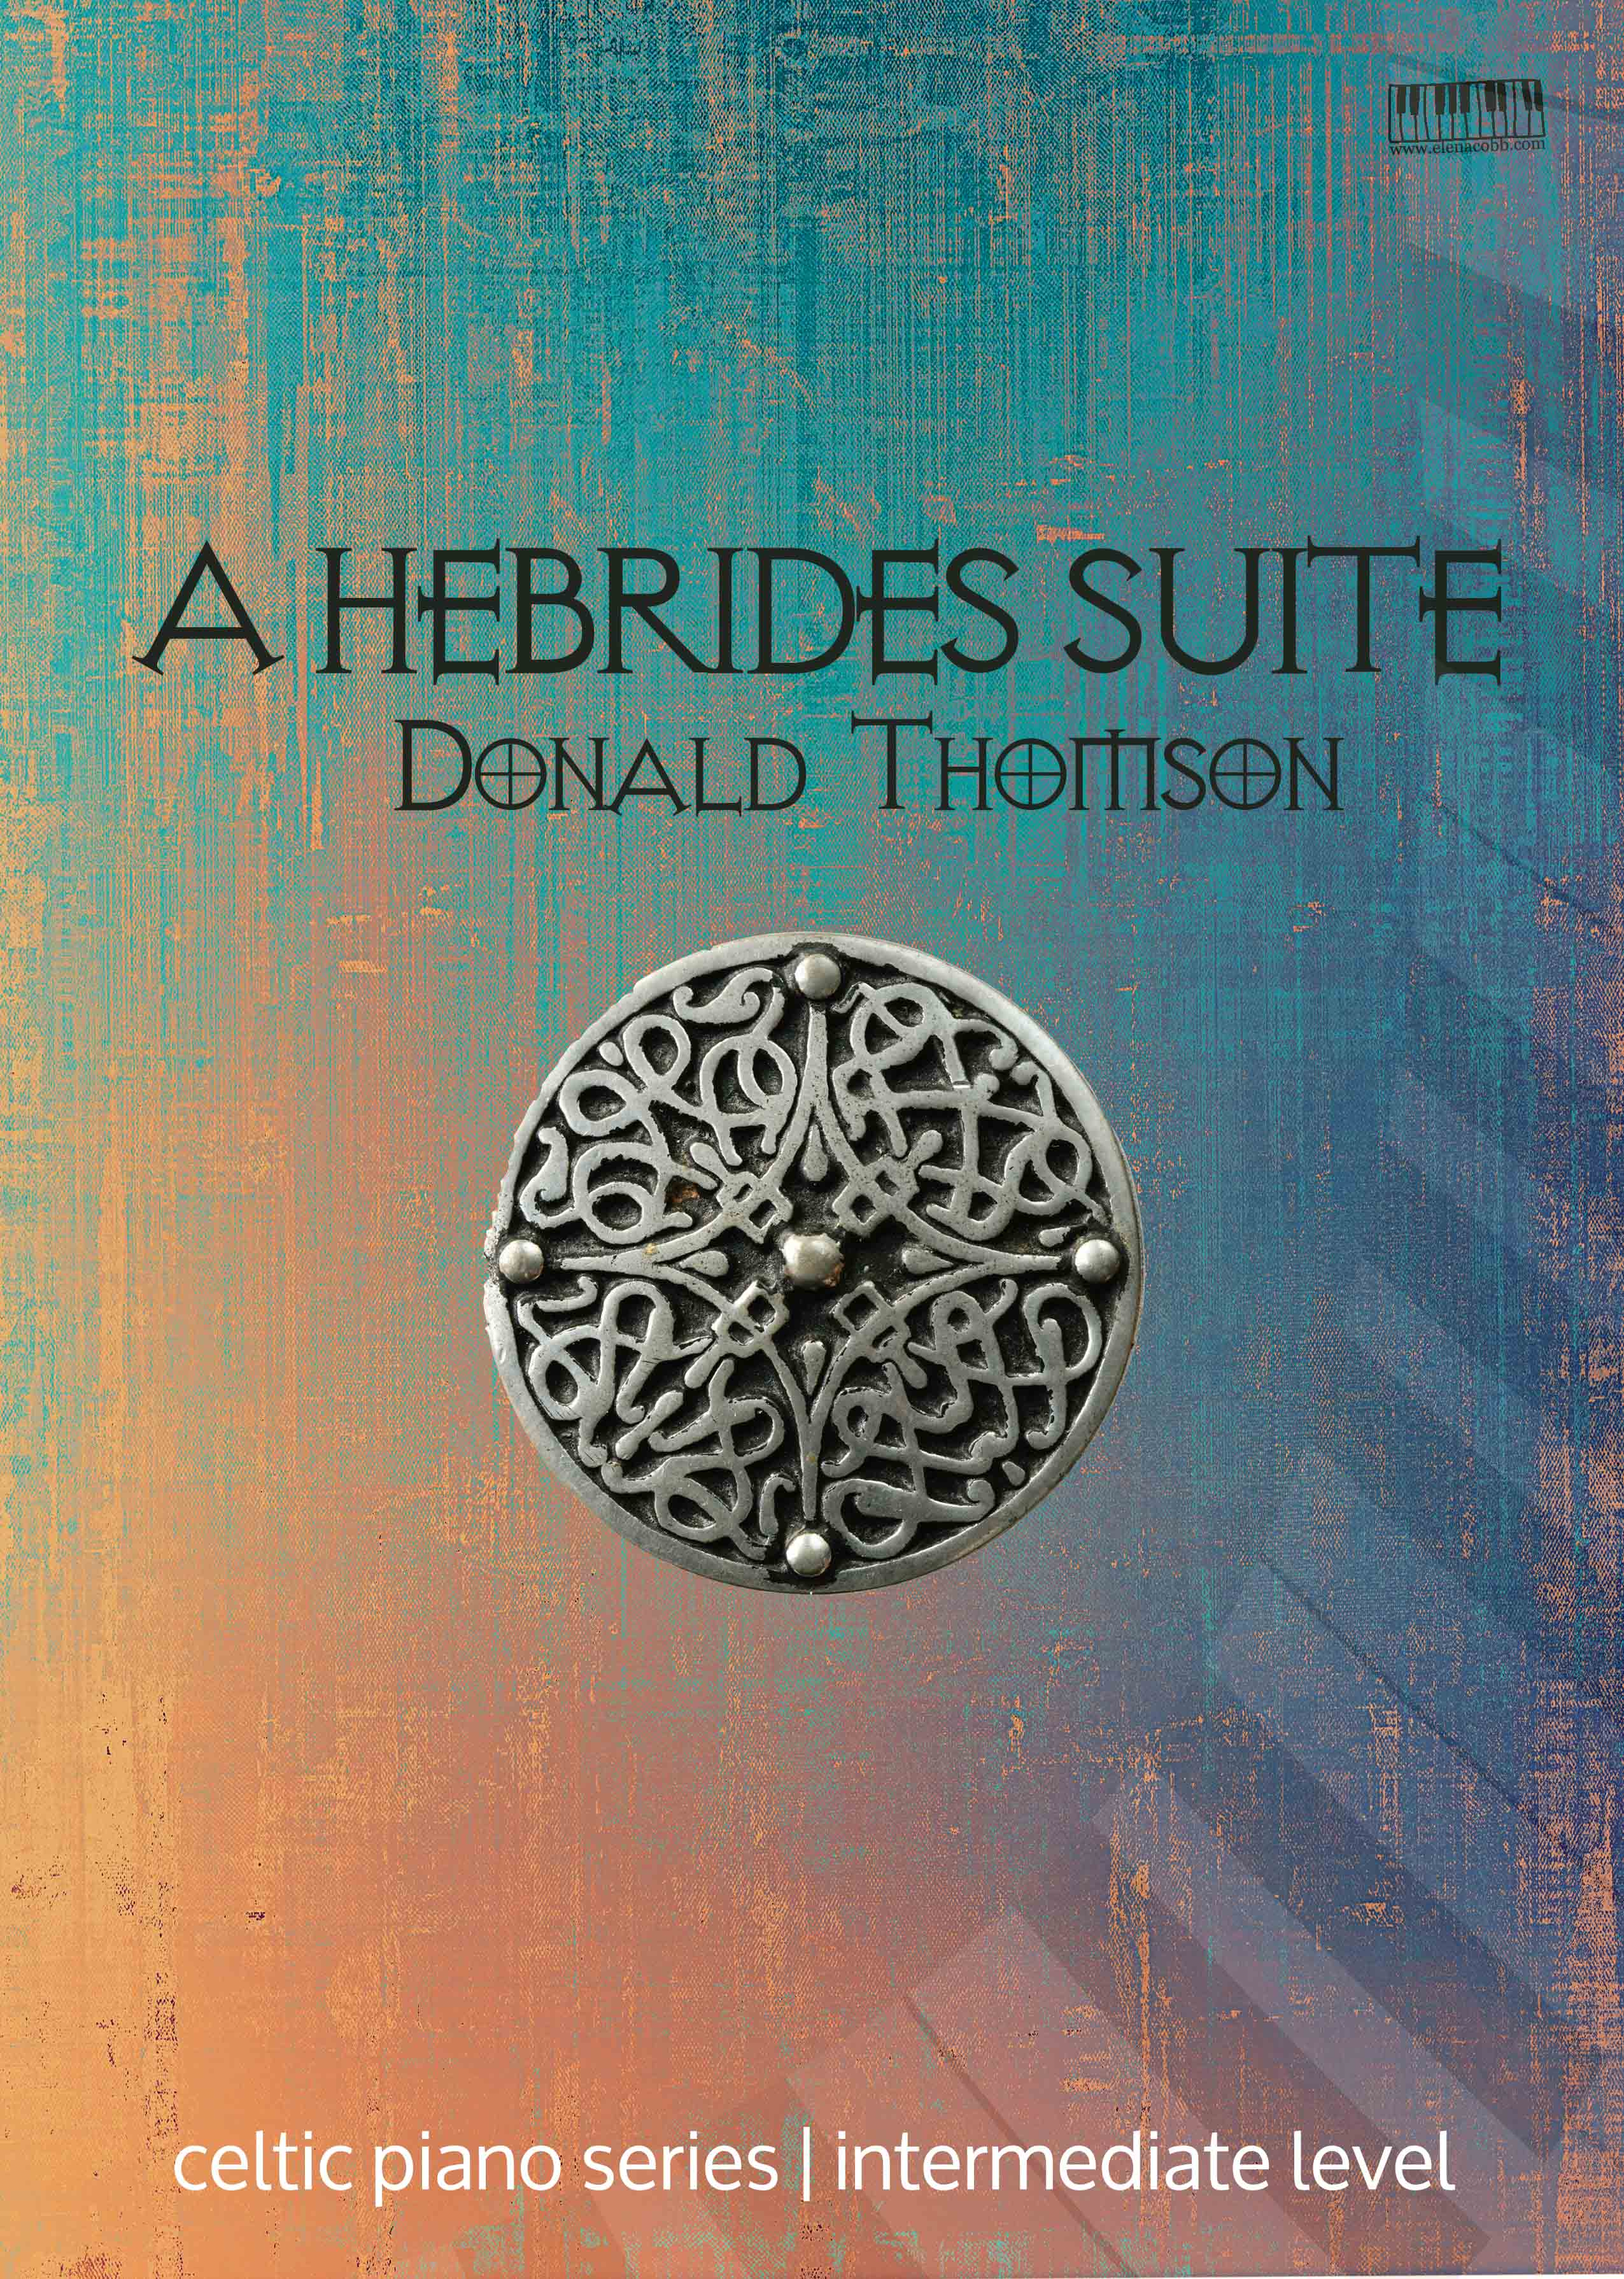 A Hebrides Suite for piano by Donald Thomson